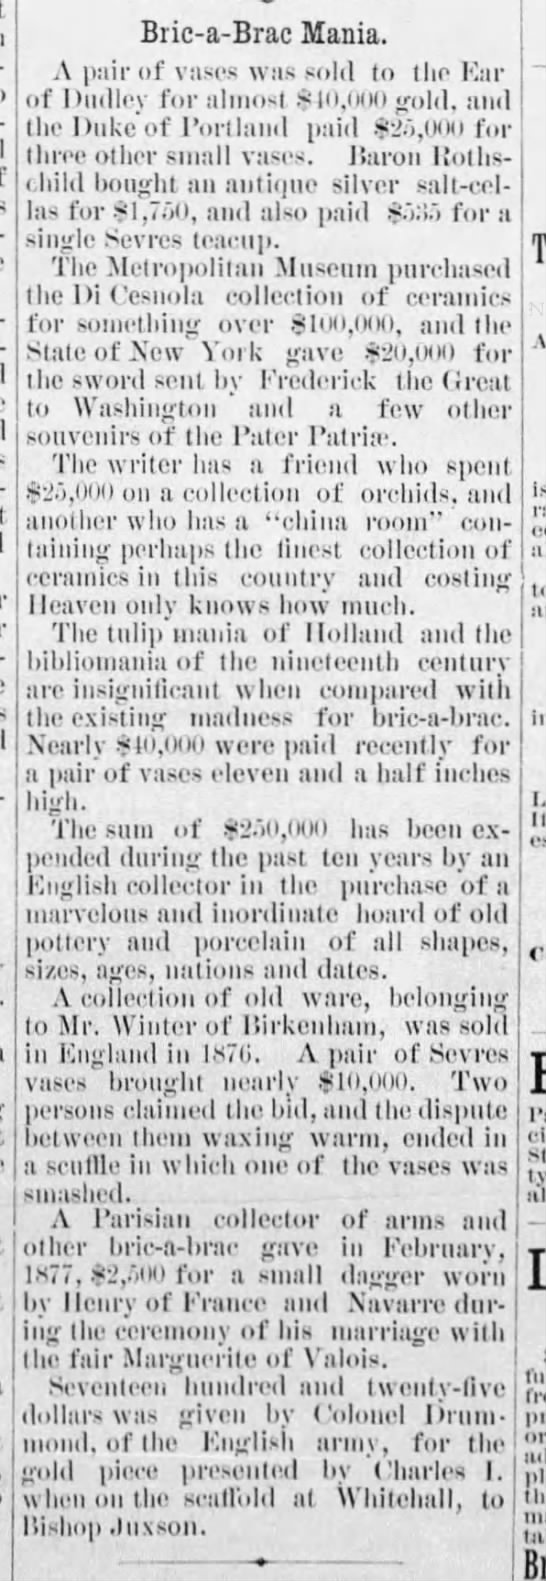 High prices being paid for bric-a-brac, 1887 -